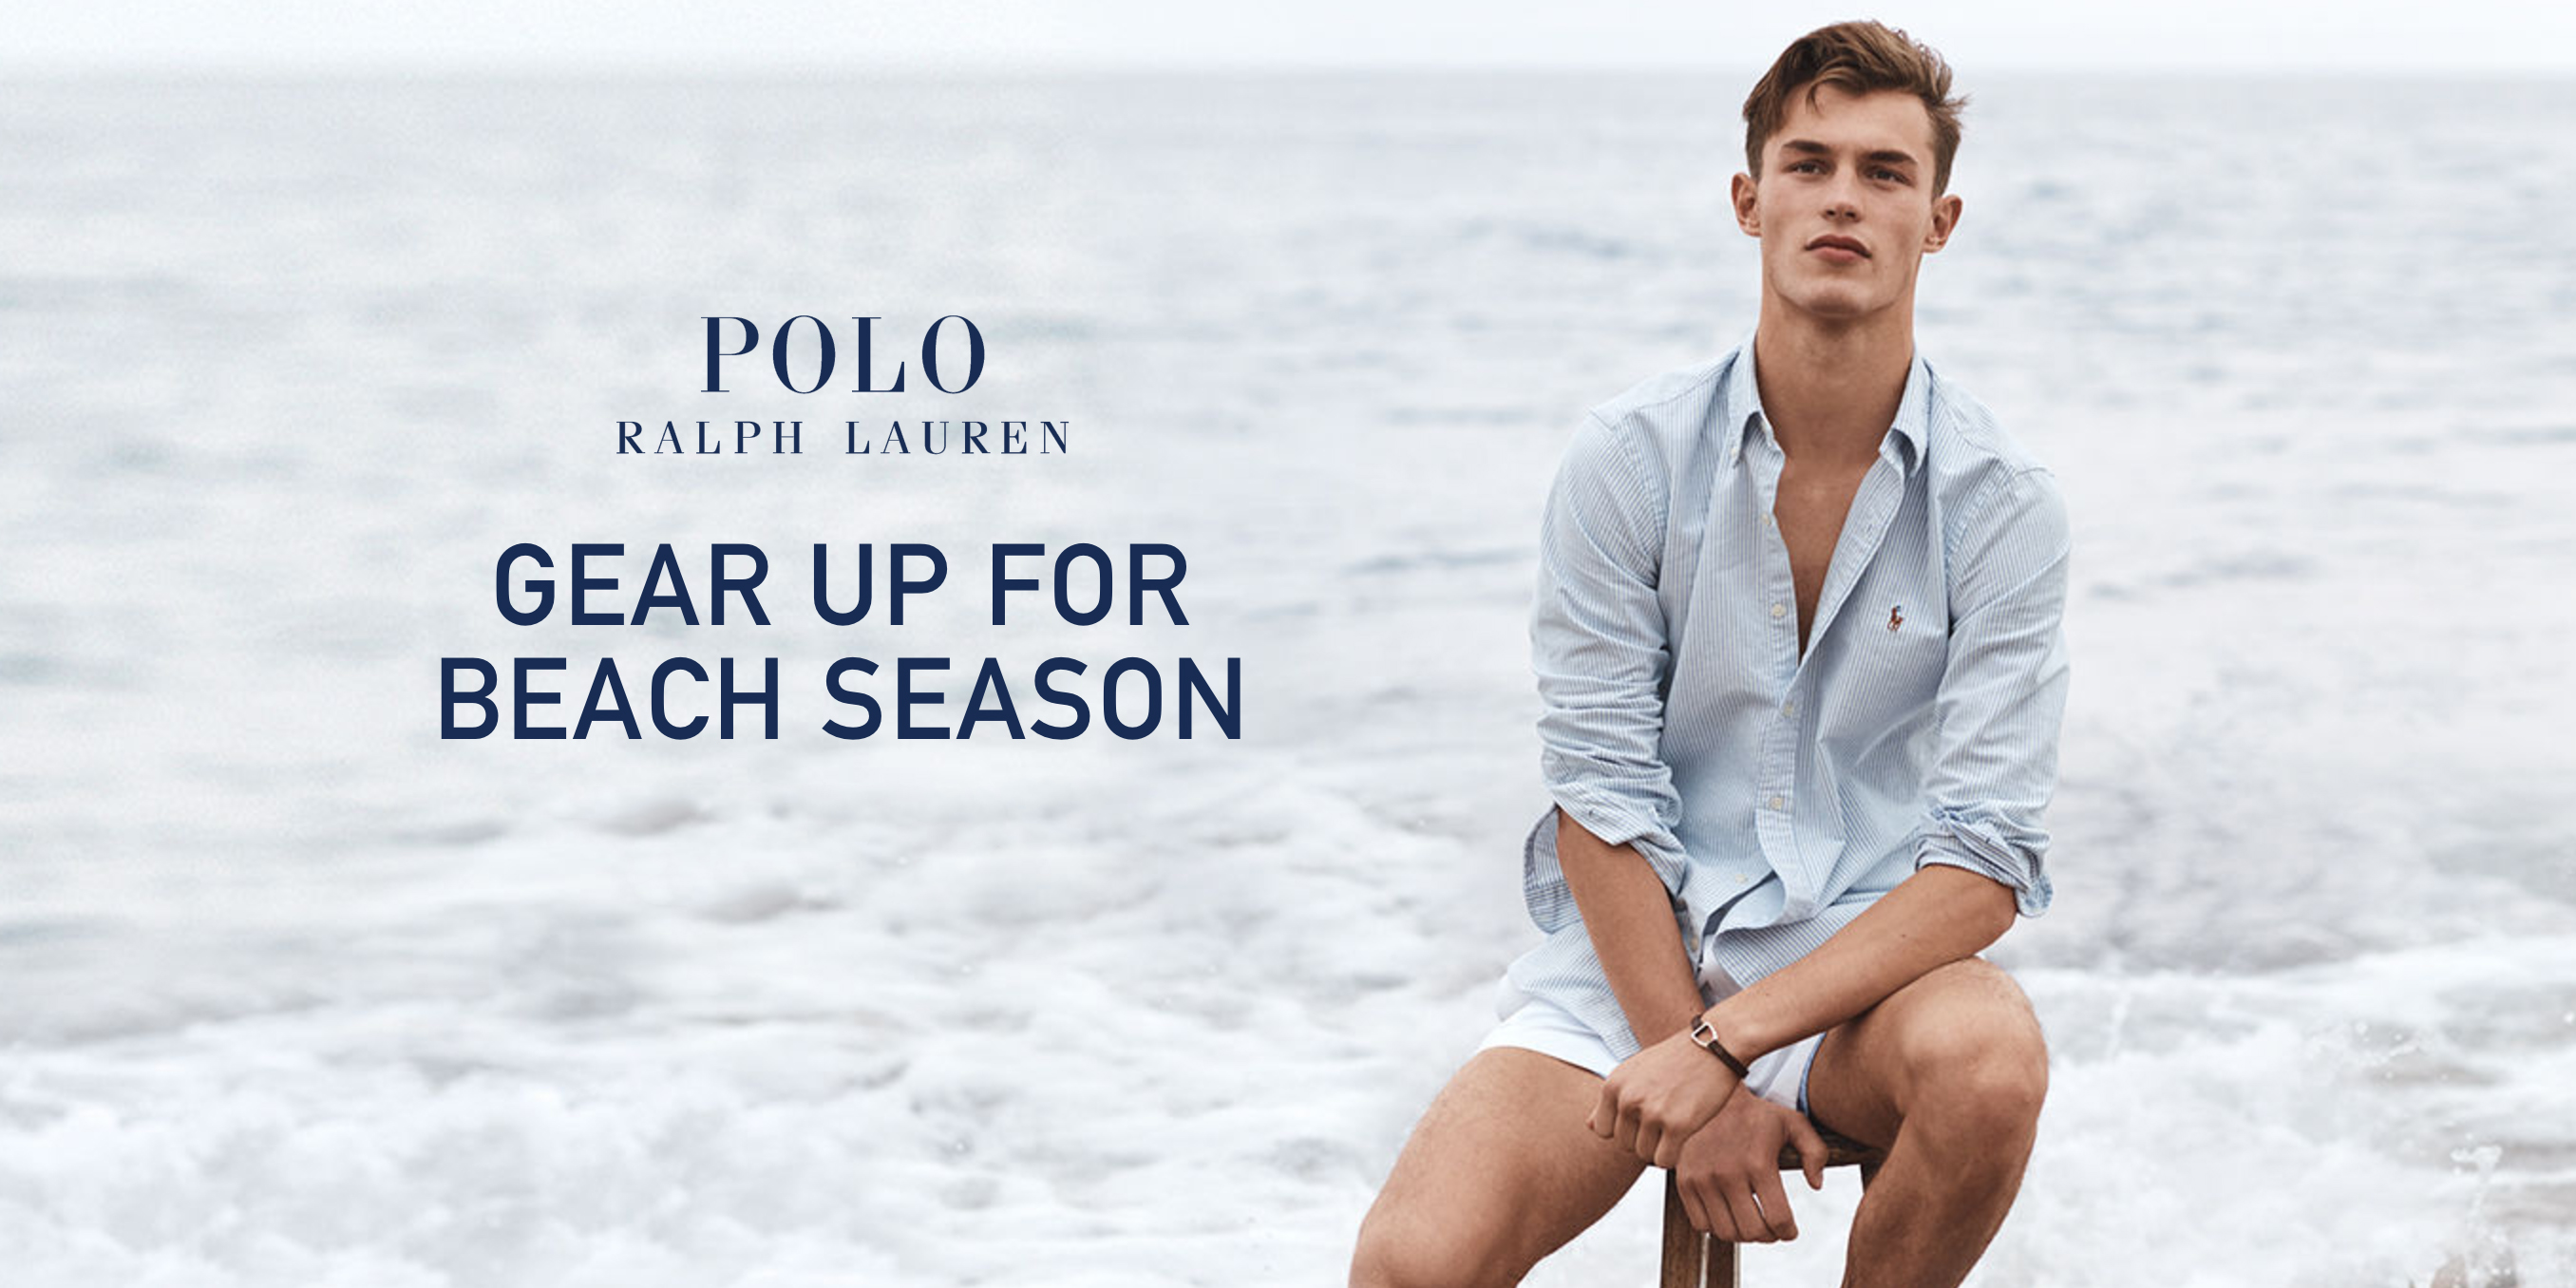 Ralph Lauren polishes your spring look with up to 40% off sale styles from just $10